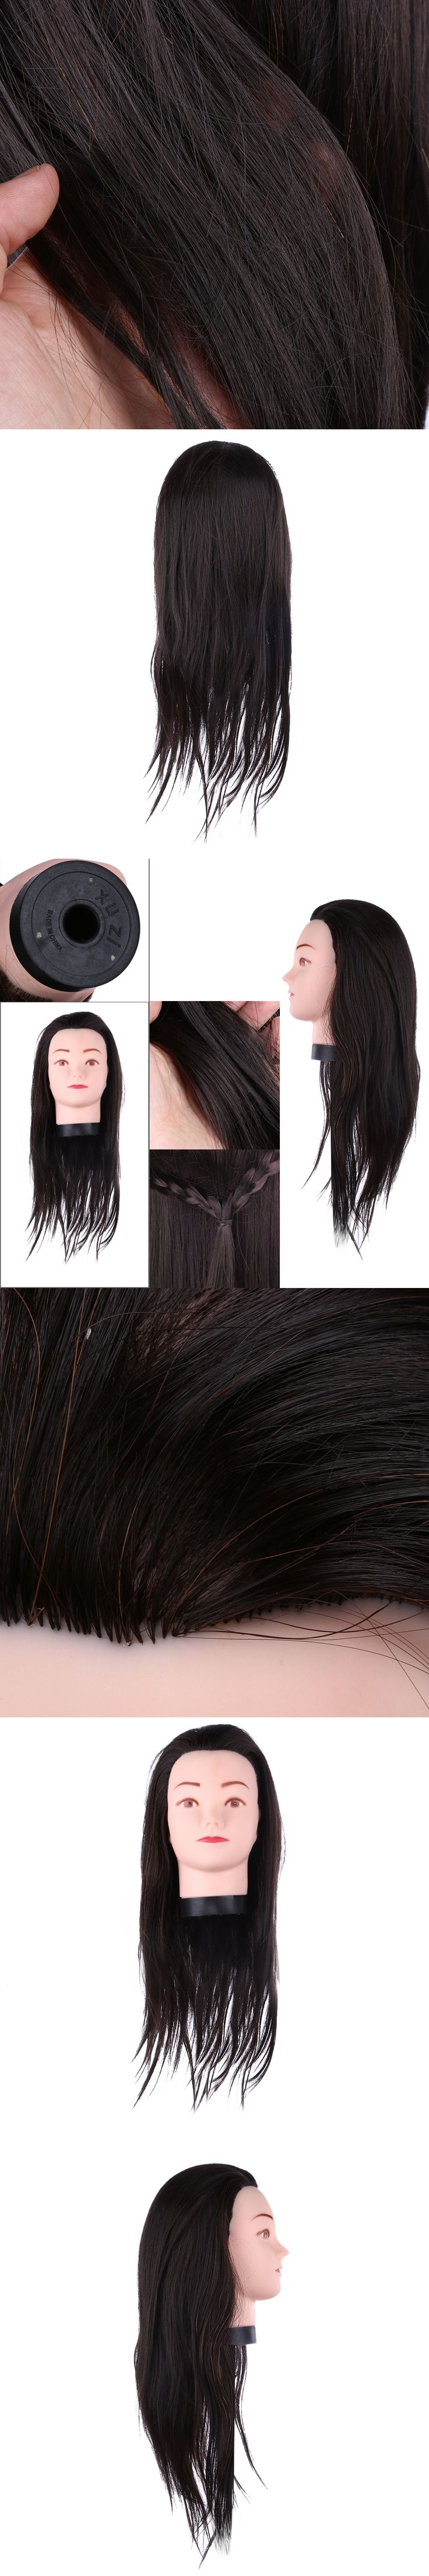 Professional Hairdressing Training Mannequin Practice Head 55cm Black Hair For Hairdressers Training Head Mannequin Head